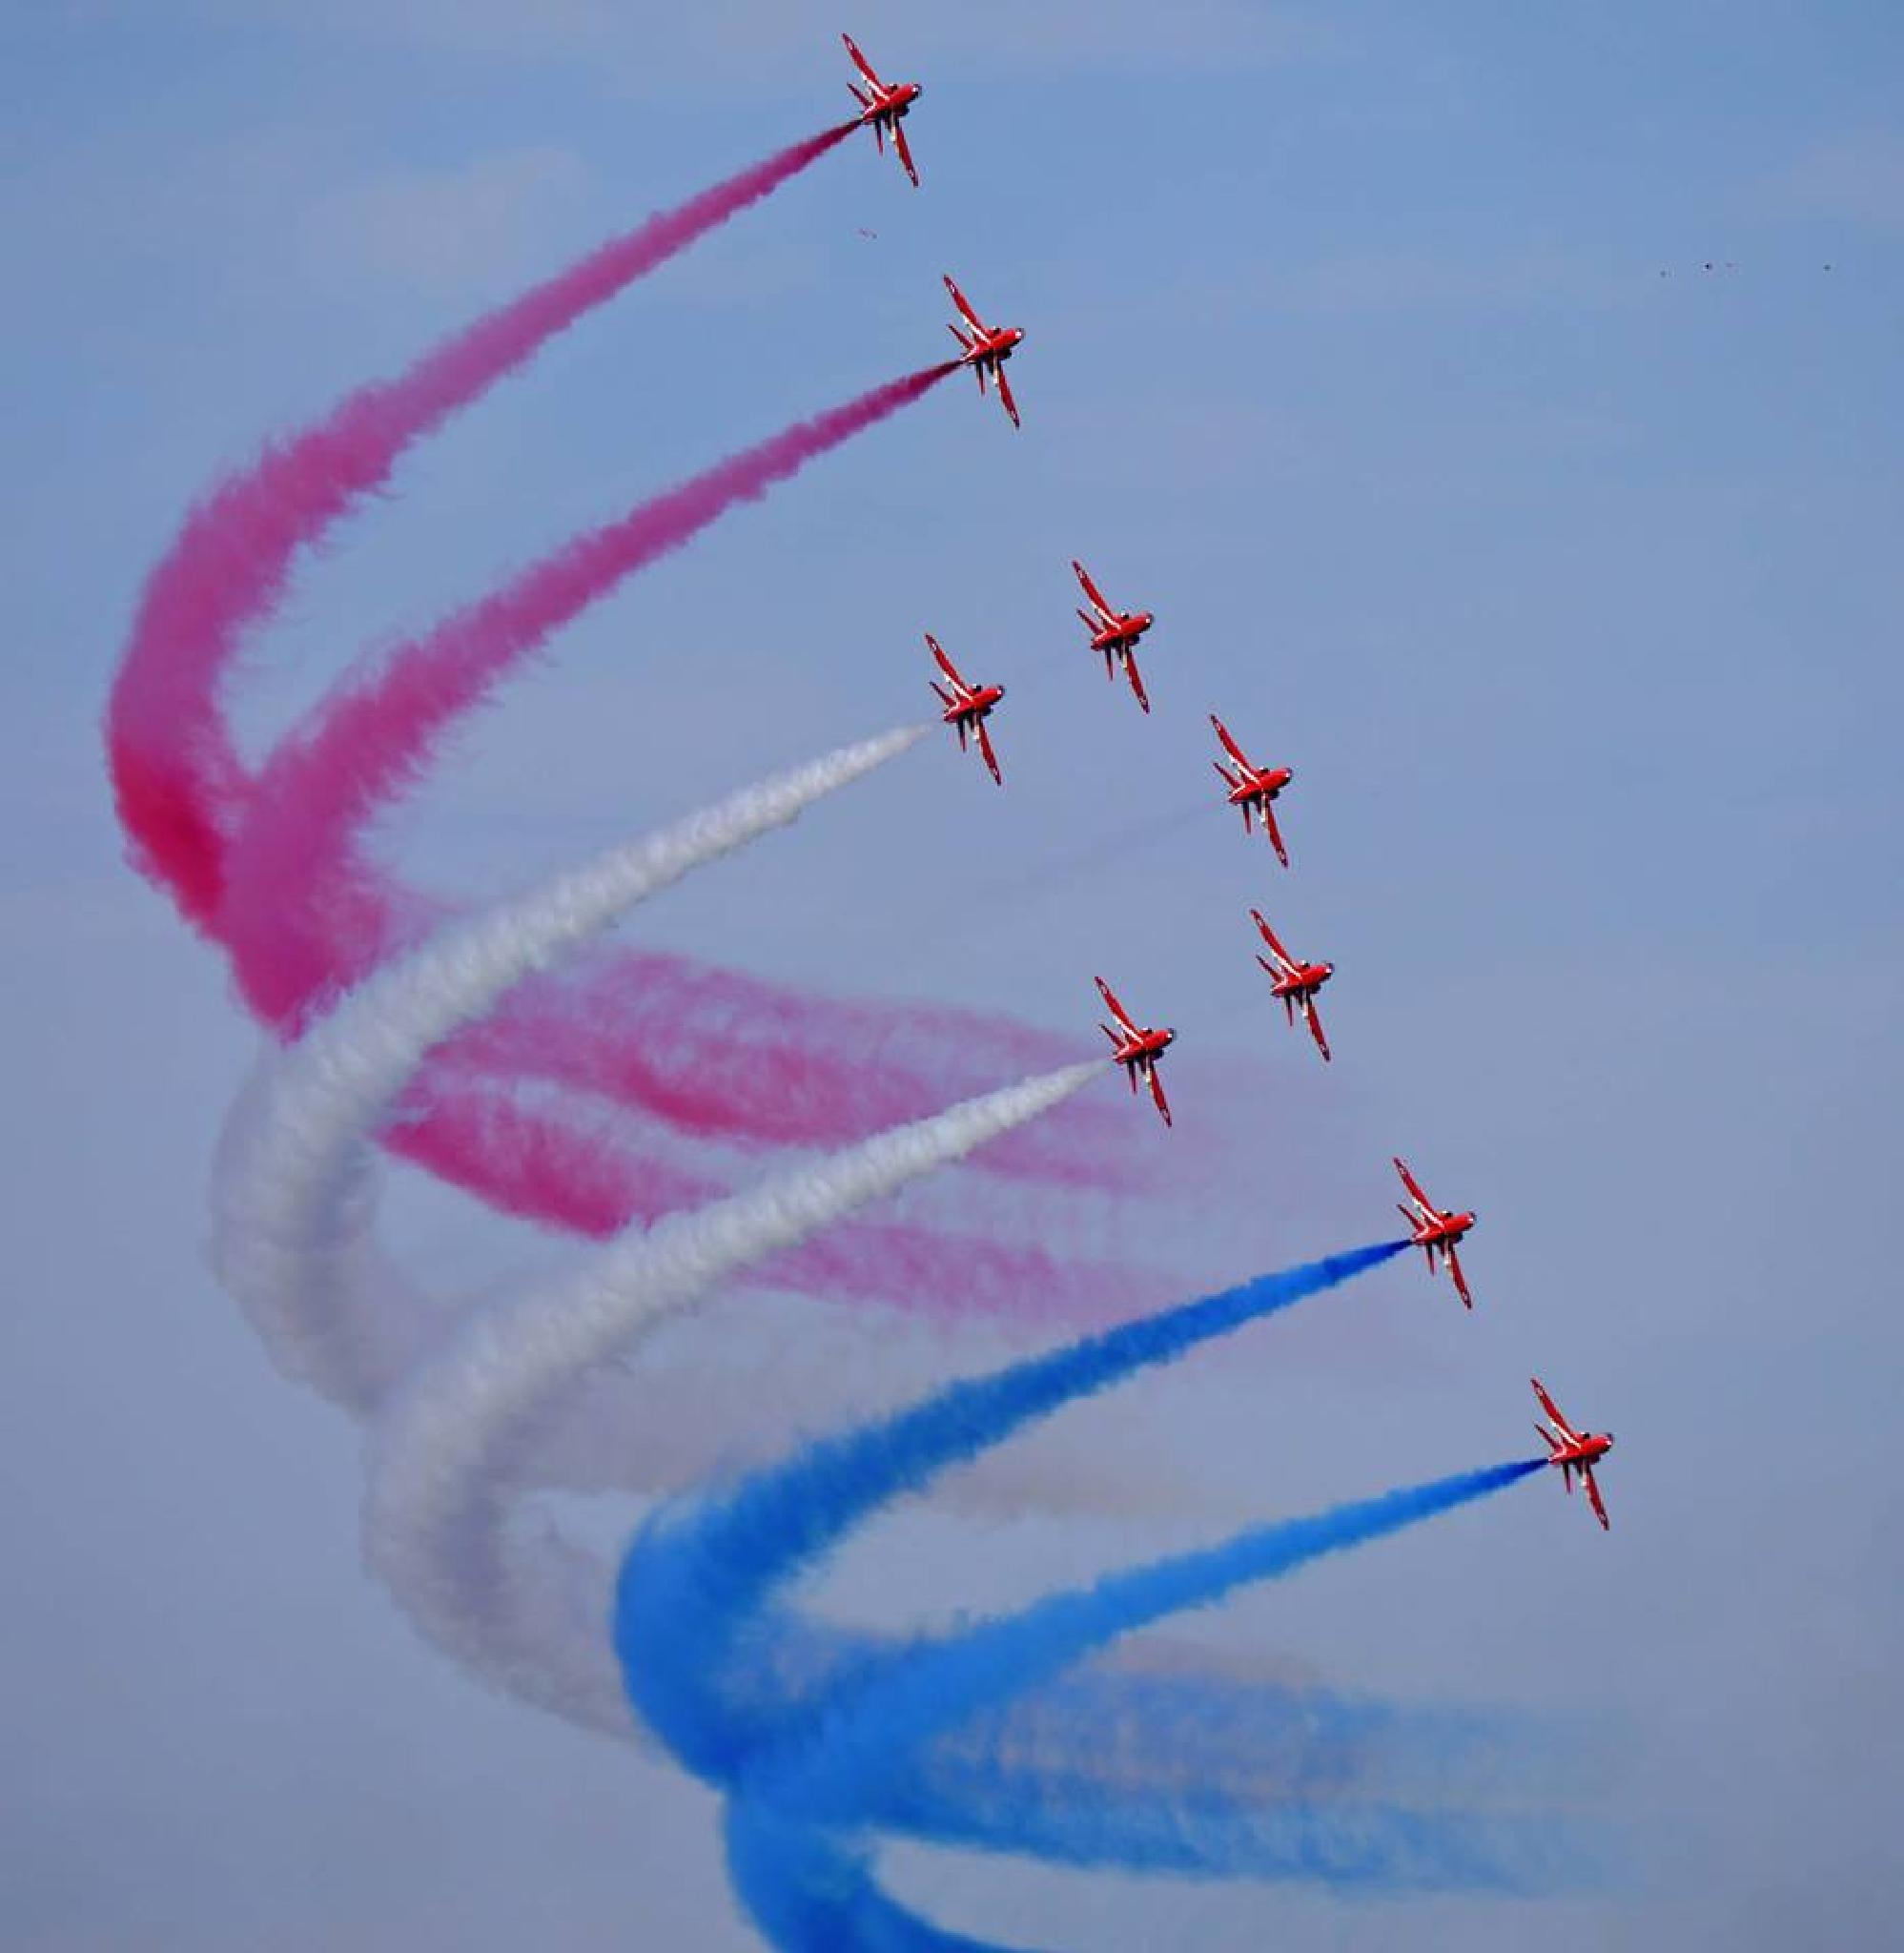 Red Arrows Sunderland Airshow 2014. by daza38